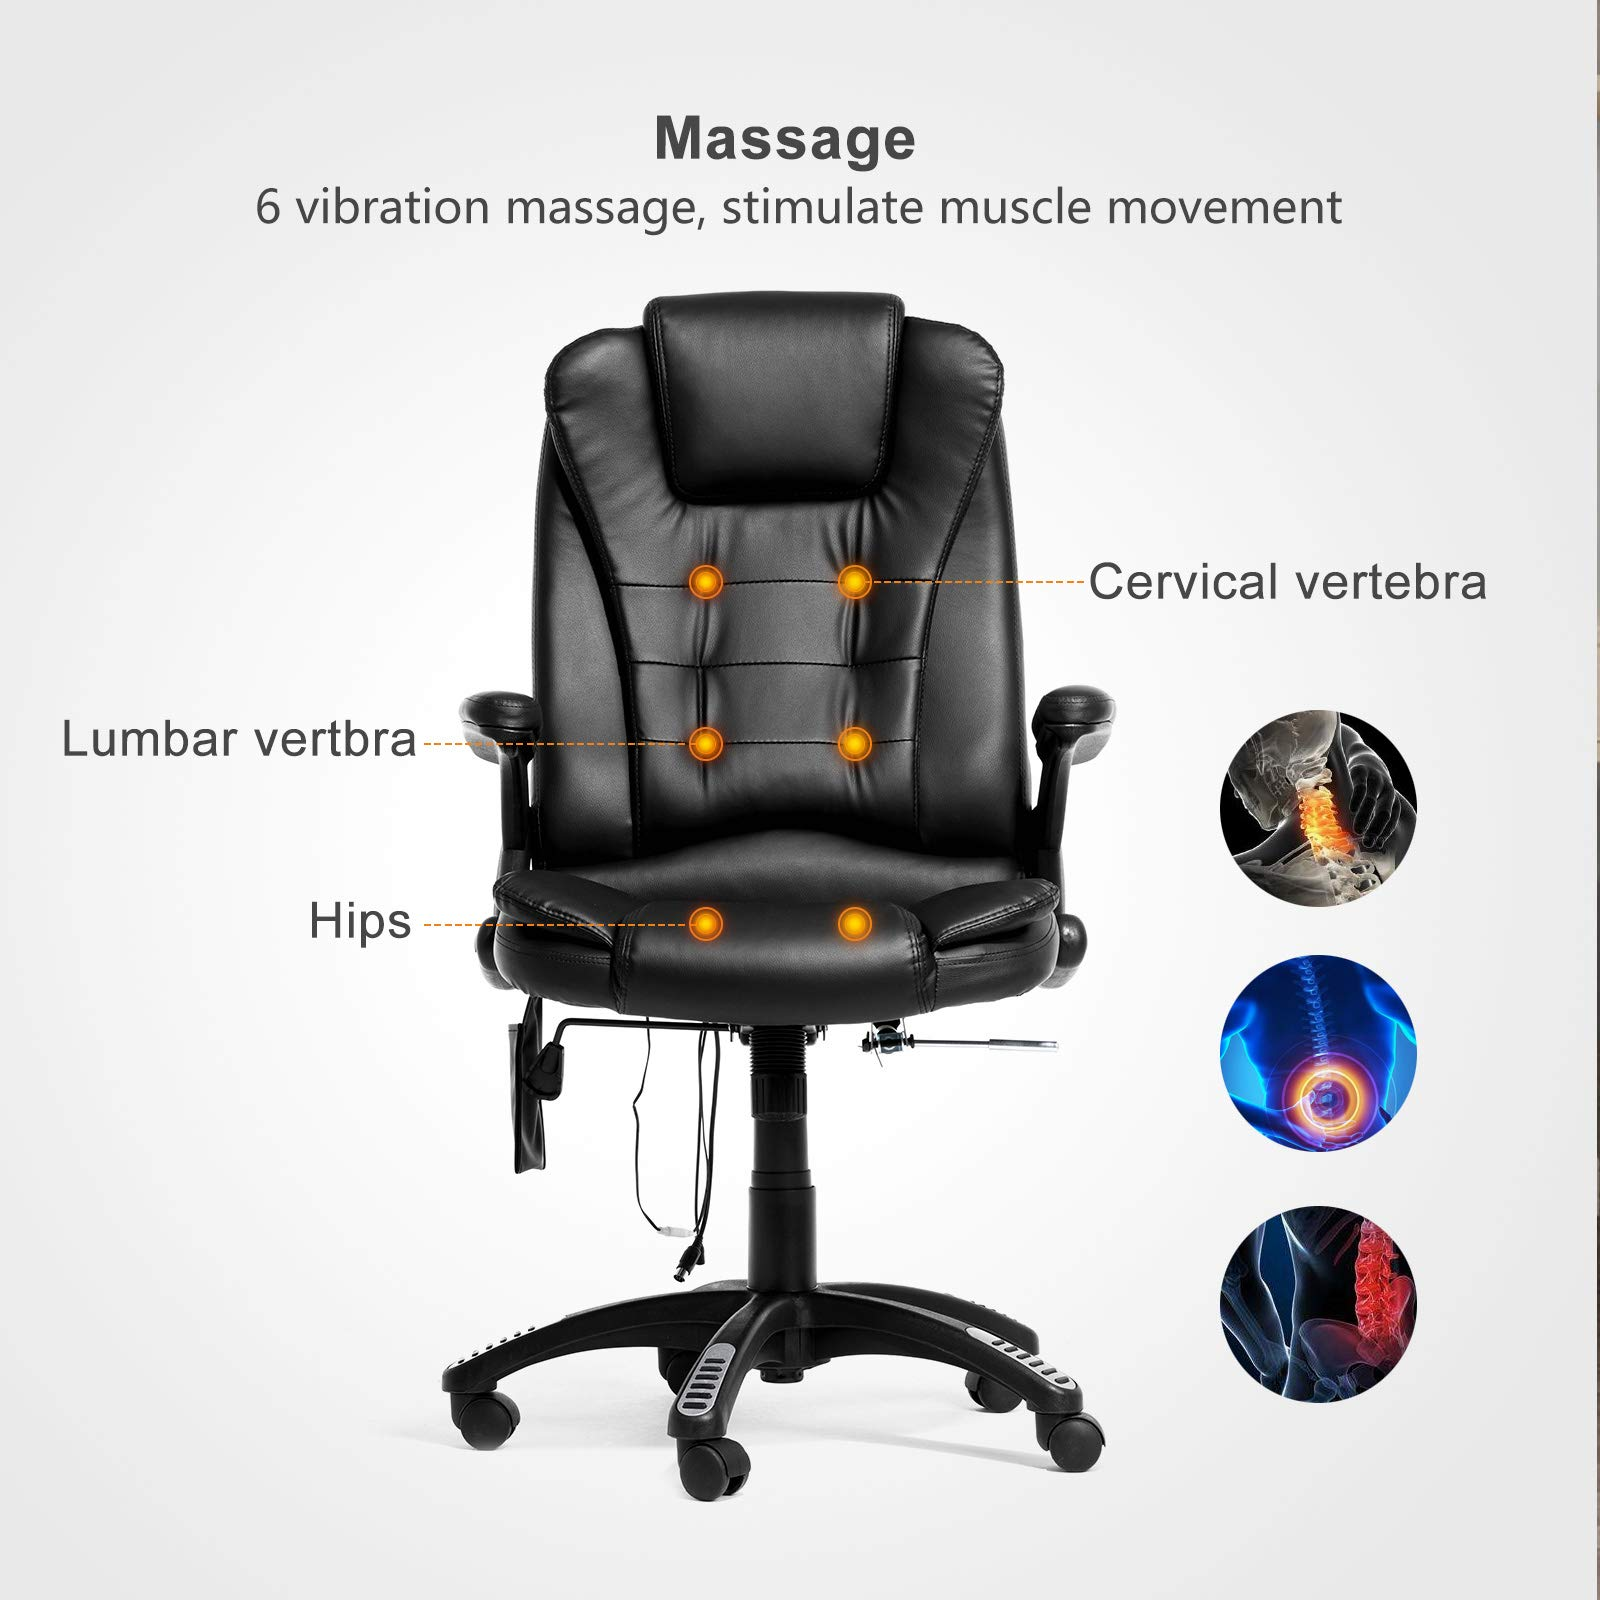 Mecor Heated Office Massage High-Back PU Leather Computer Chair w/360 Degree Adjustable Height & Armrest (Black) by Mecor (Image #3)